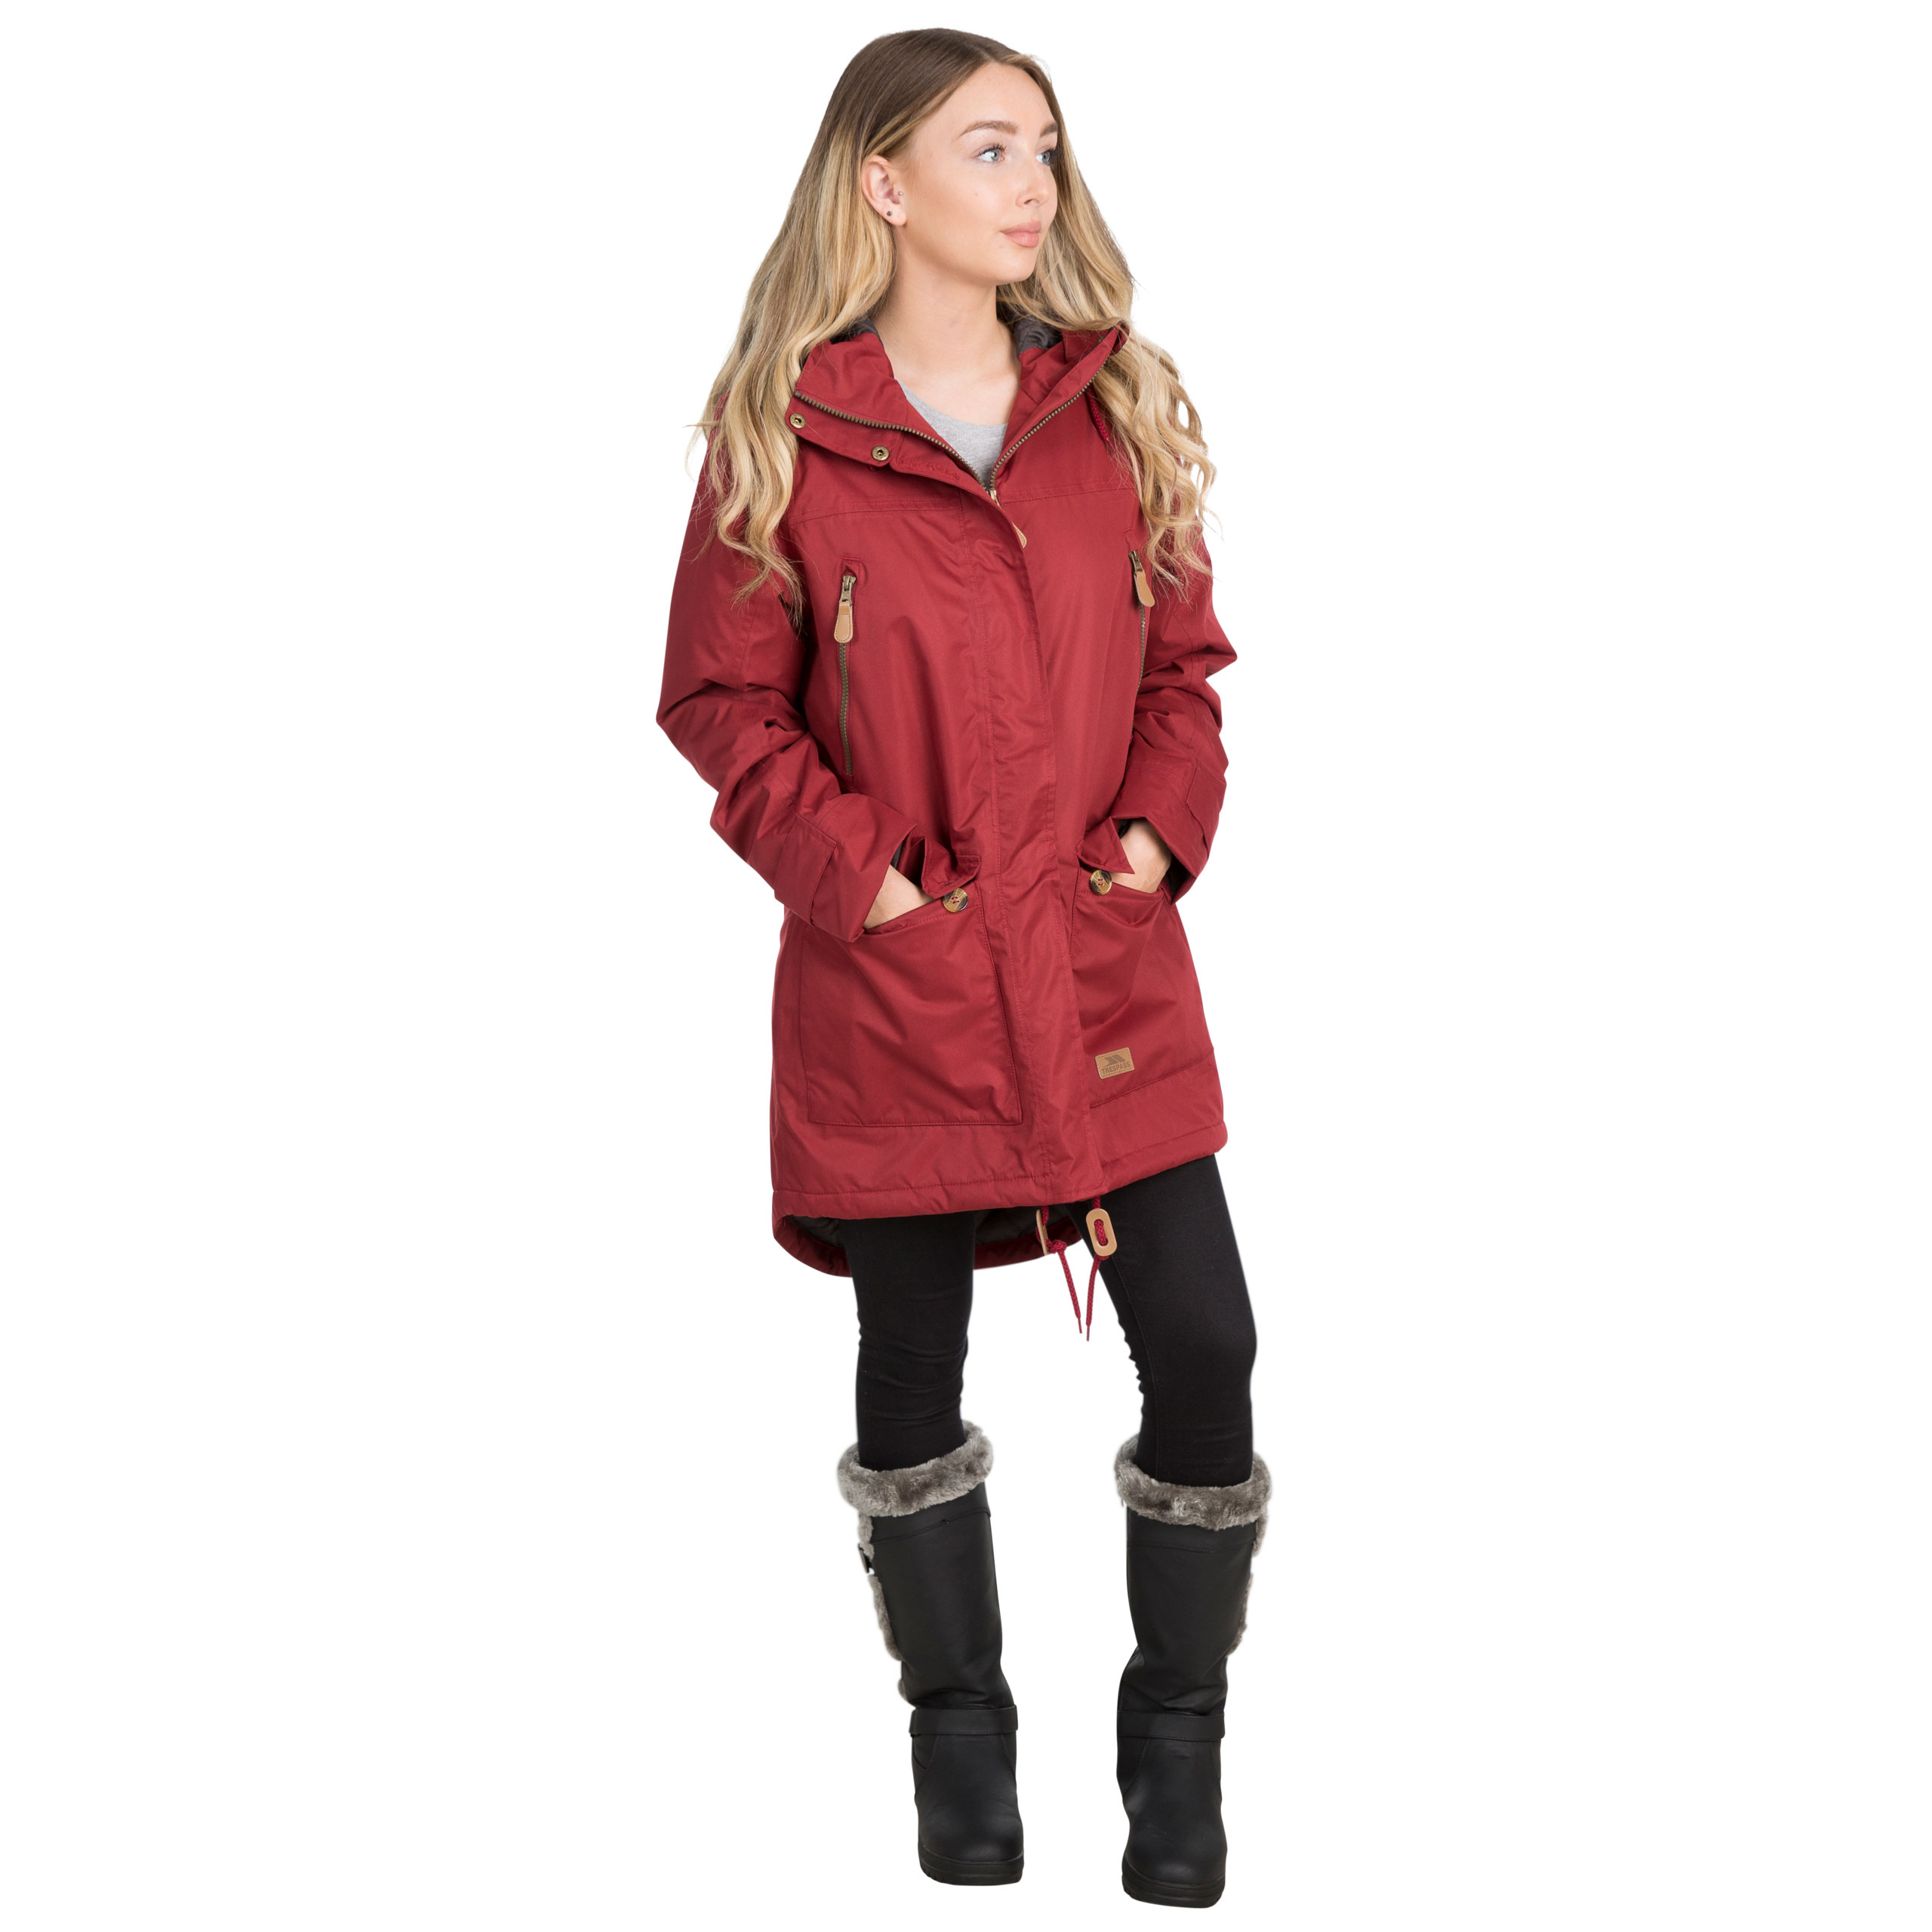 Trespass-Womens-Parka-Jacket-Waterproof-Hooded-Fur-Winter-Coat-XXS-XXXL thumbnail 22